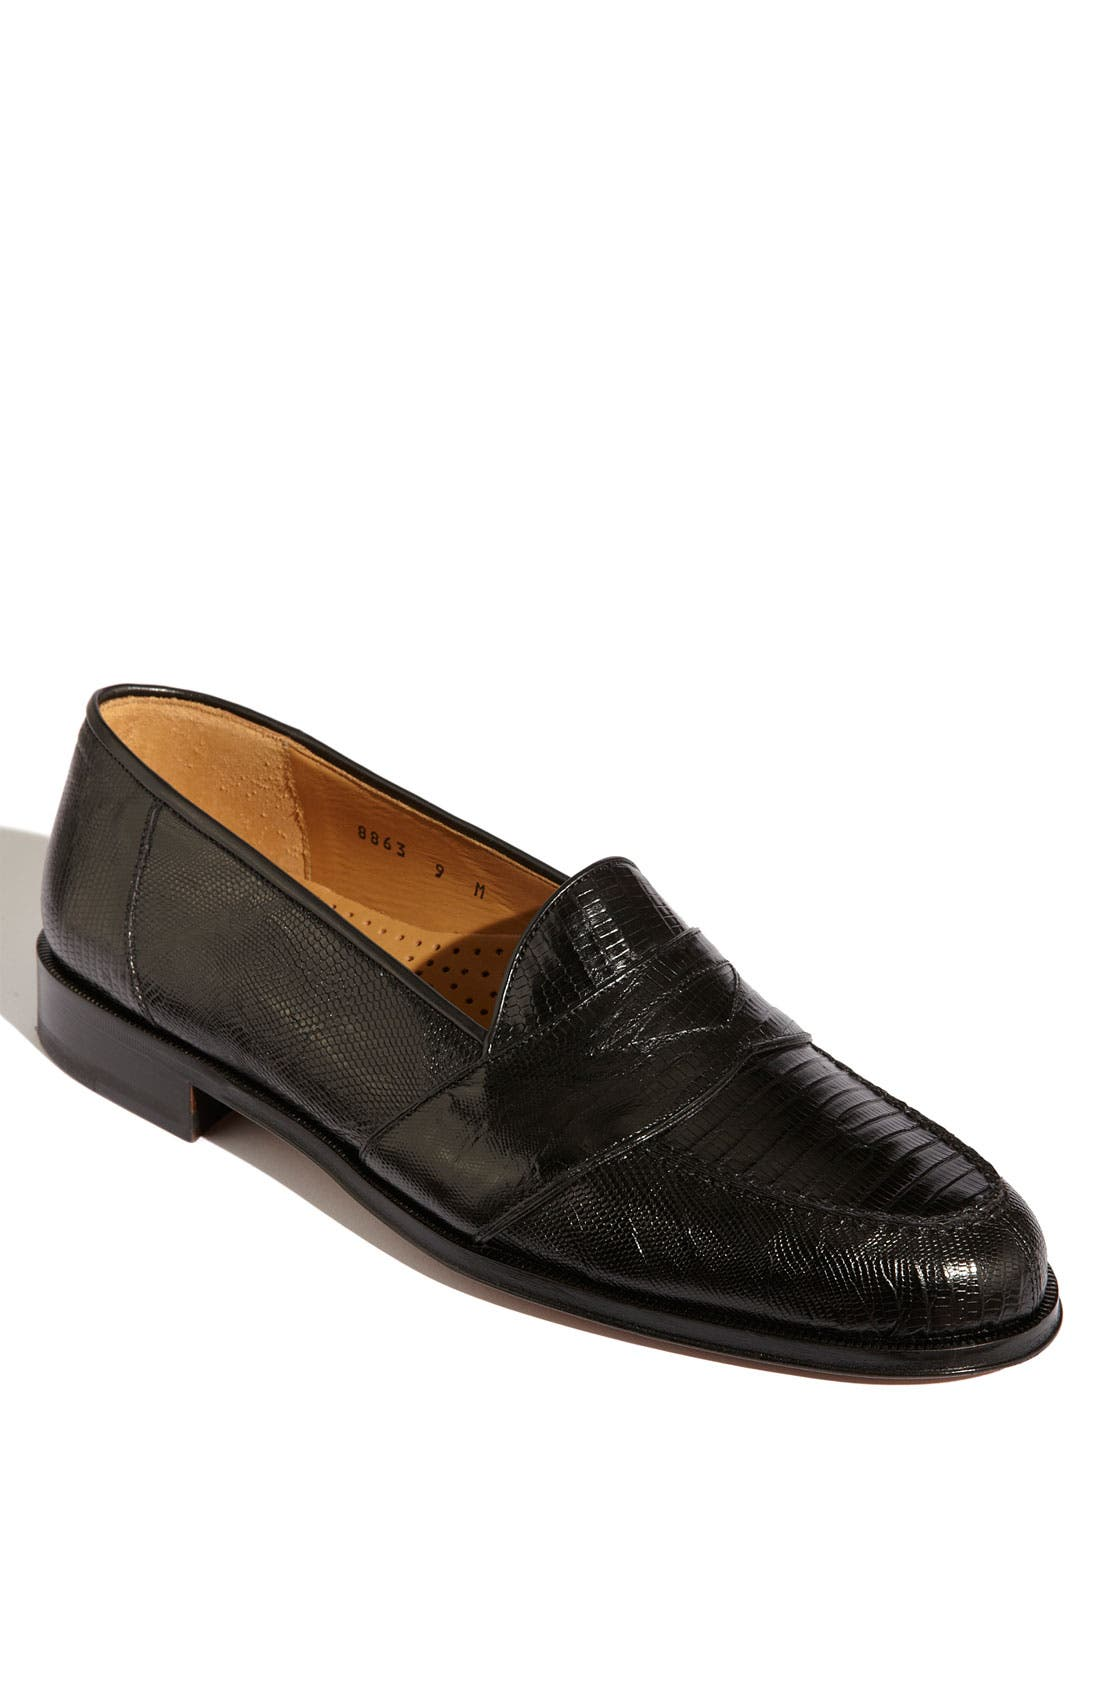 Alternate Image 1 Selected - Magnanni 'Raul' Lizard Loafer